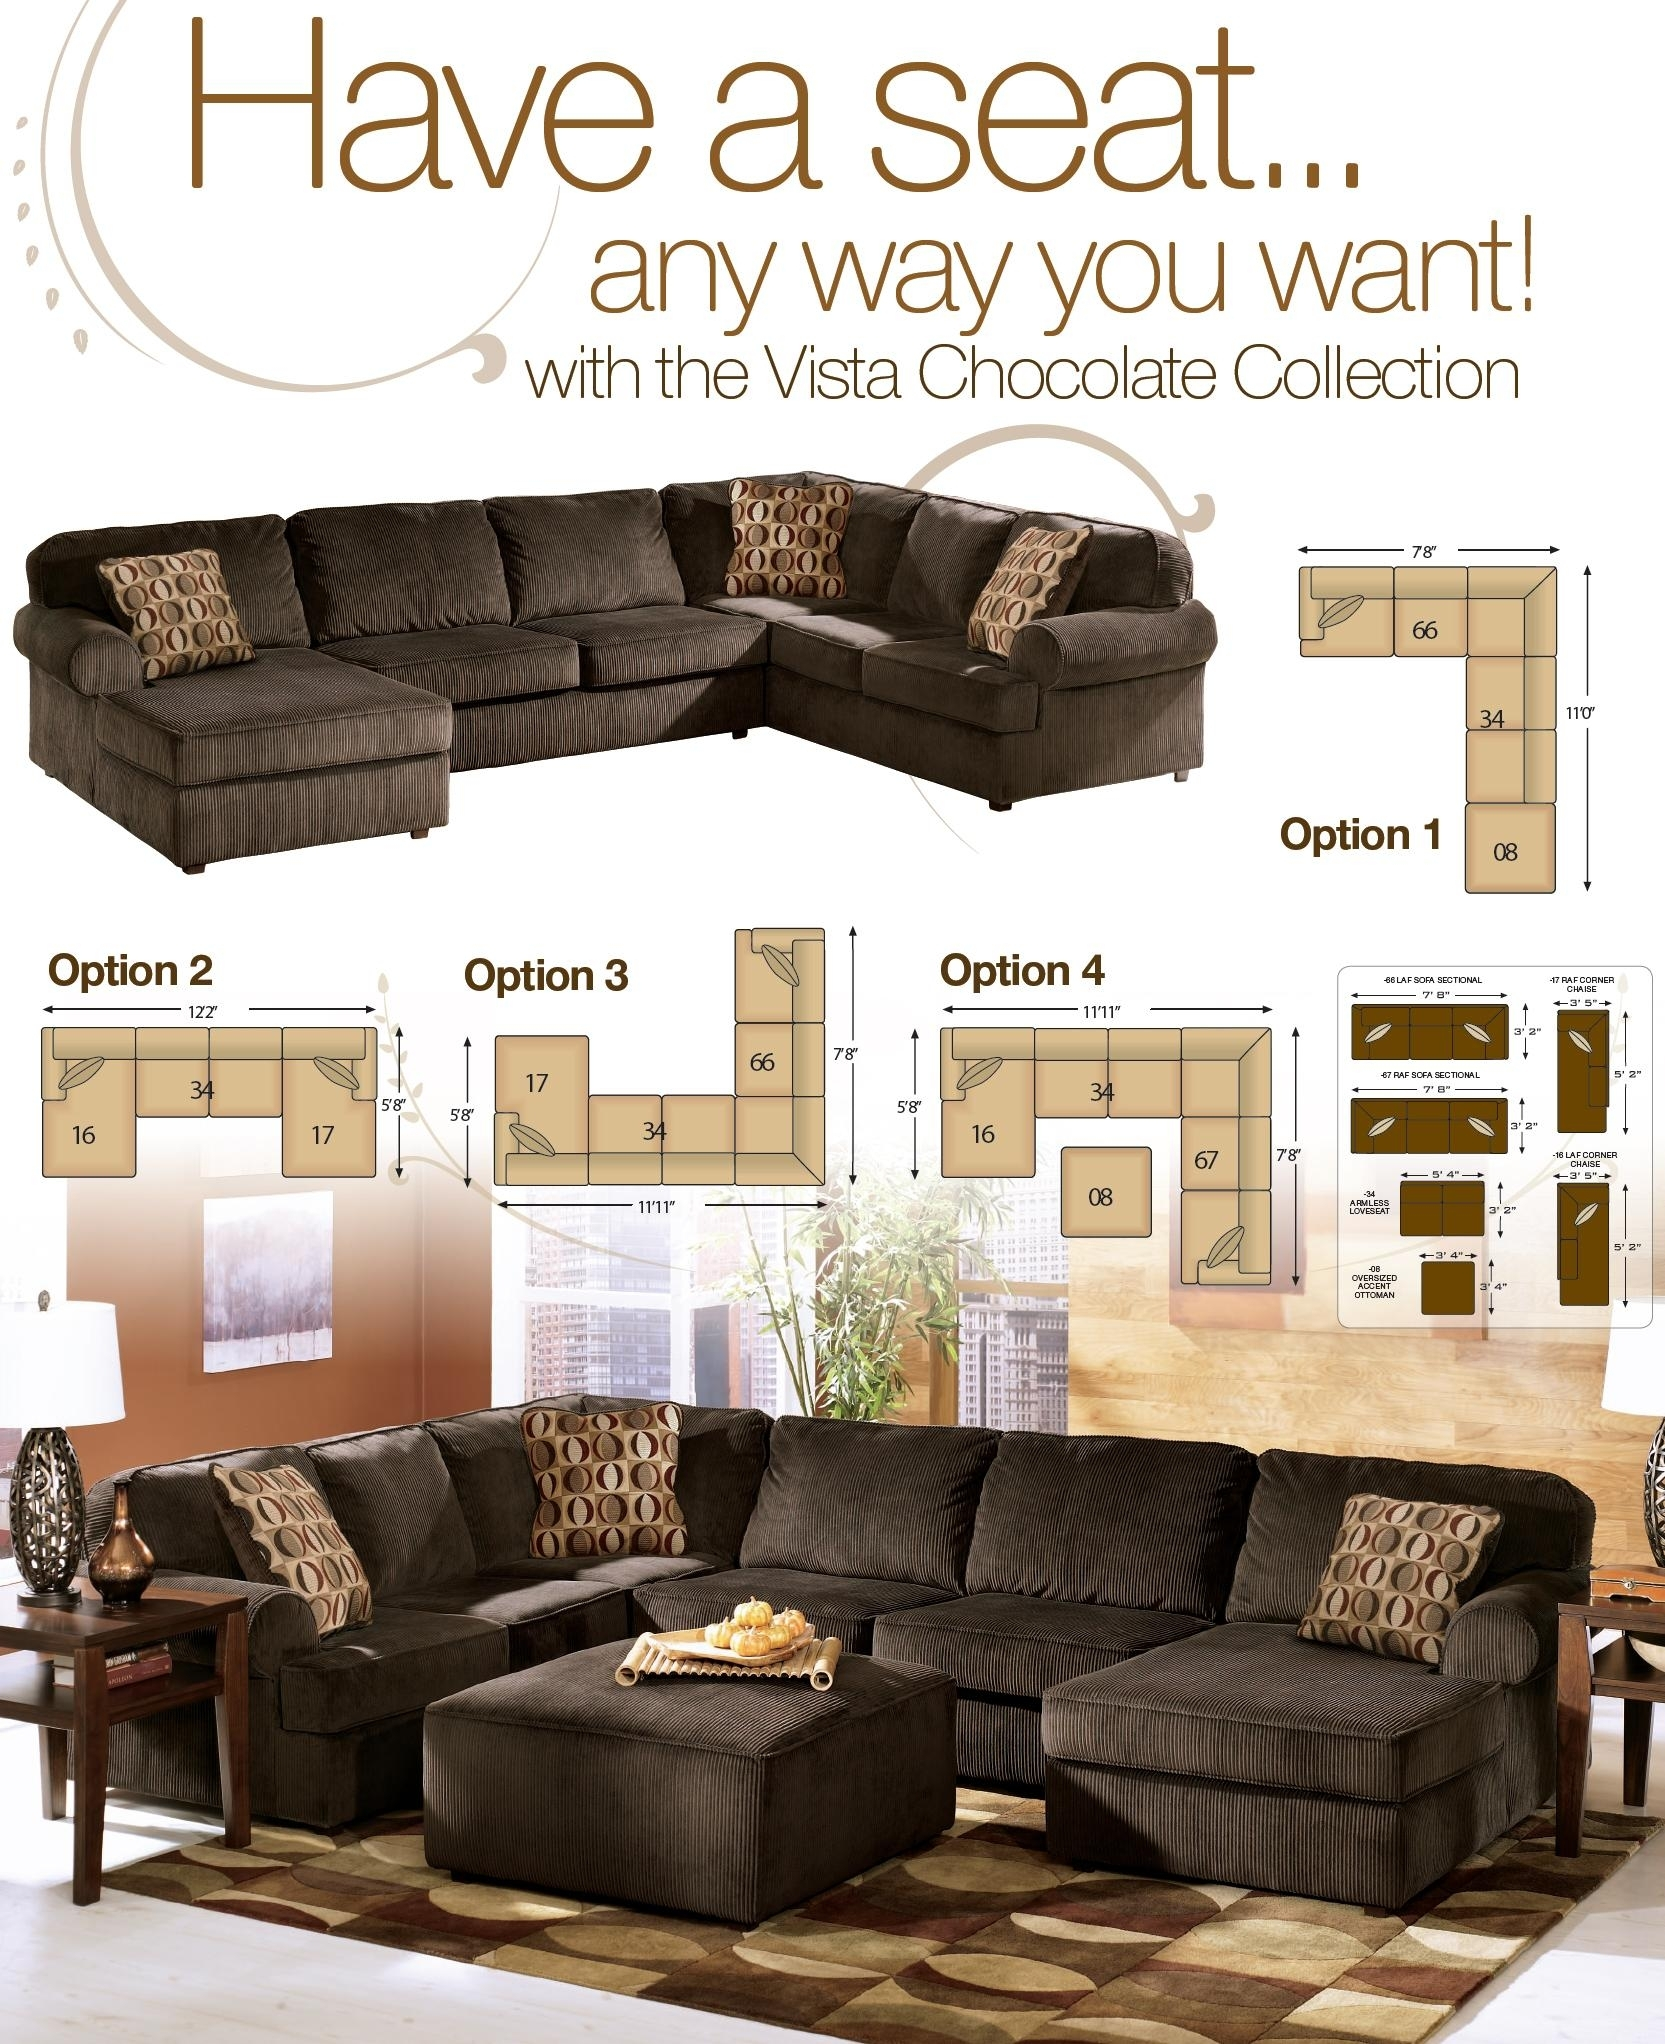 Ashley Furniture Vista Chocolate Piece Sectional With Right In Sierra Down 3 Piece Sectionals With Laf Chaise (Image 5 of 25)